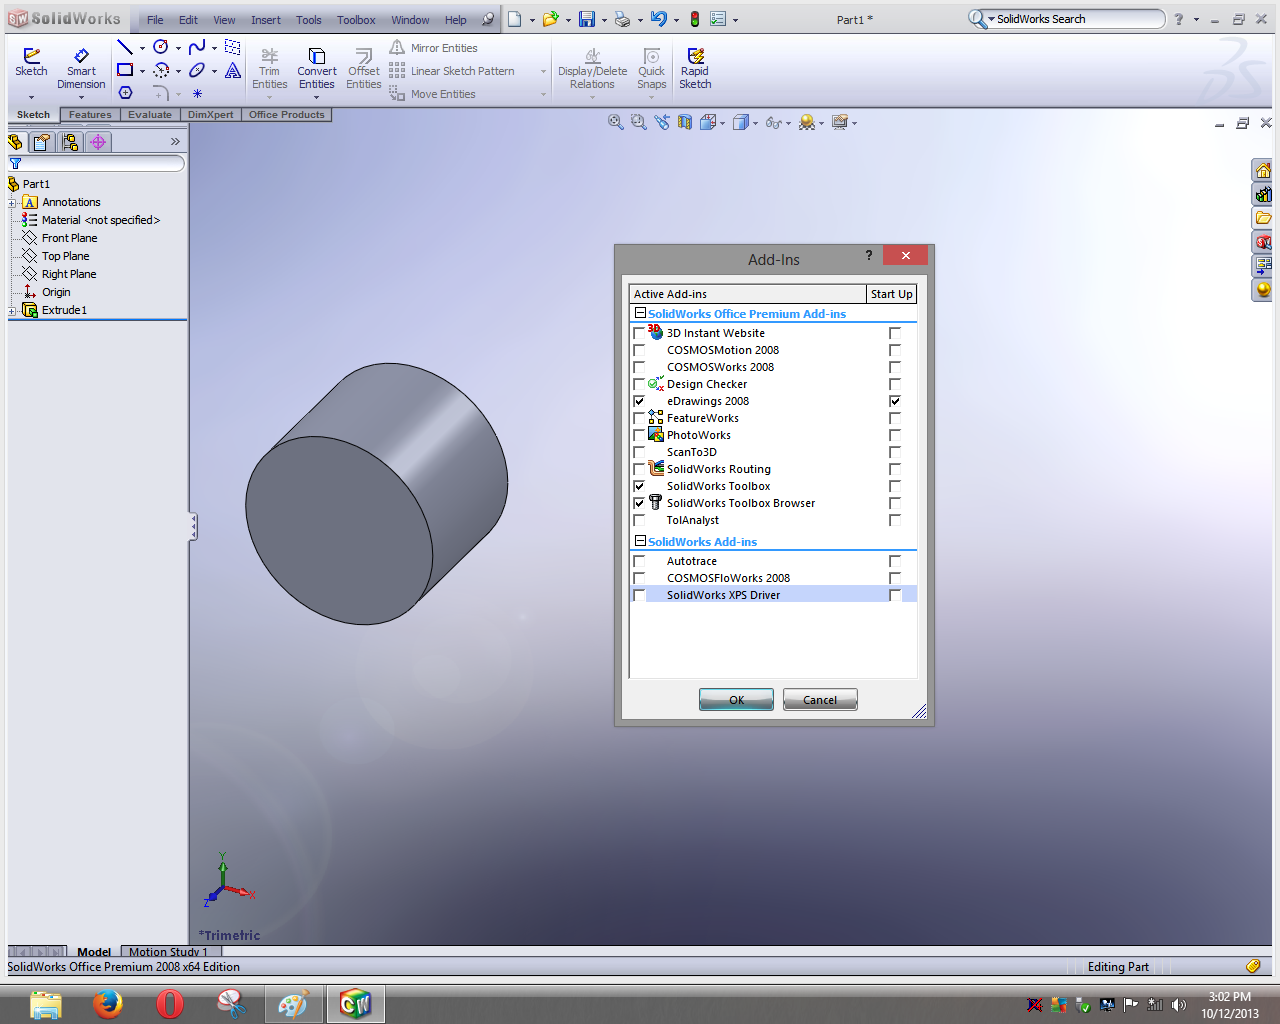 CAD Help Center: Installation Guide for SolidWorks 2008 x64